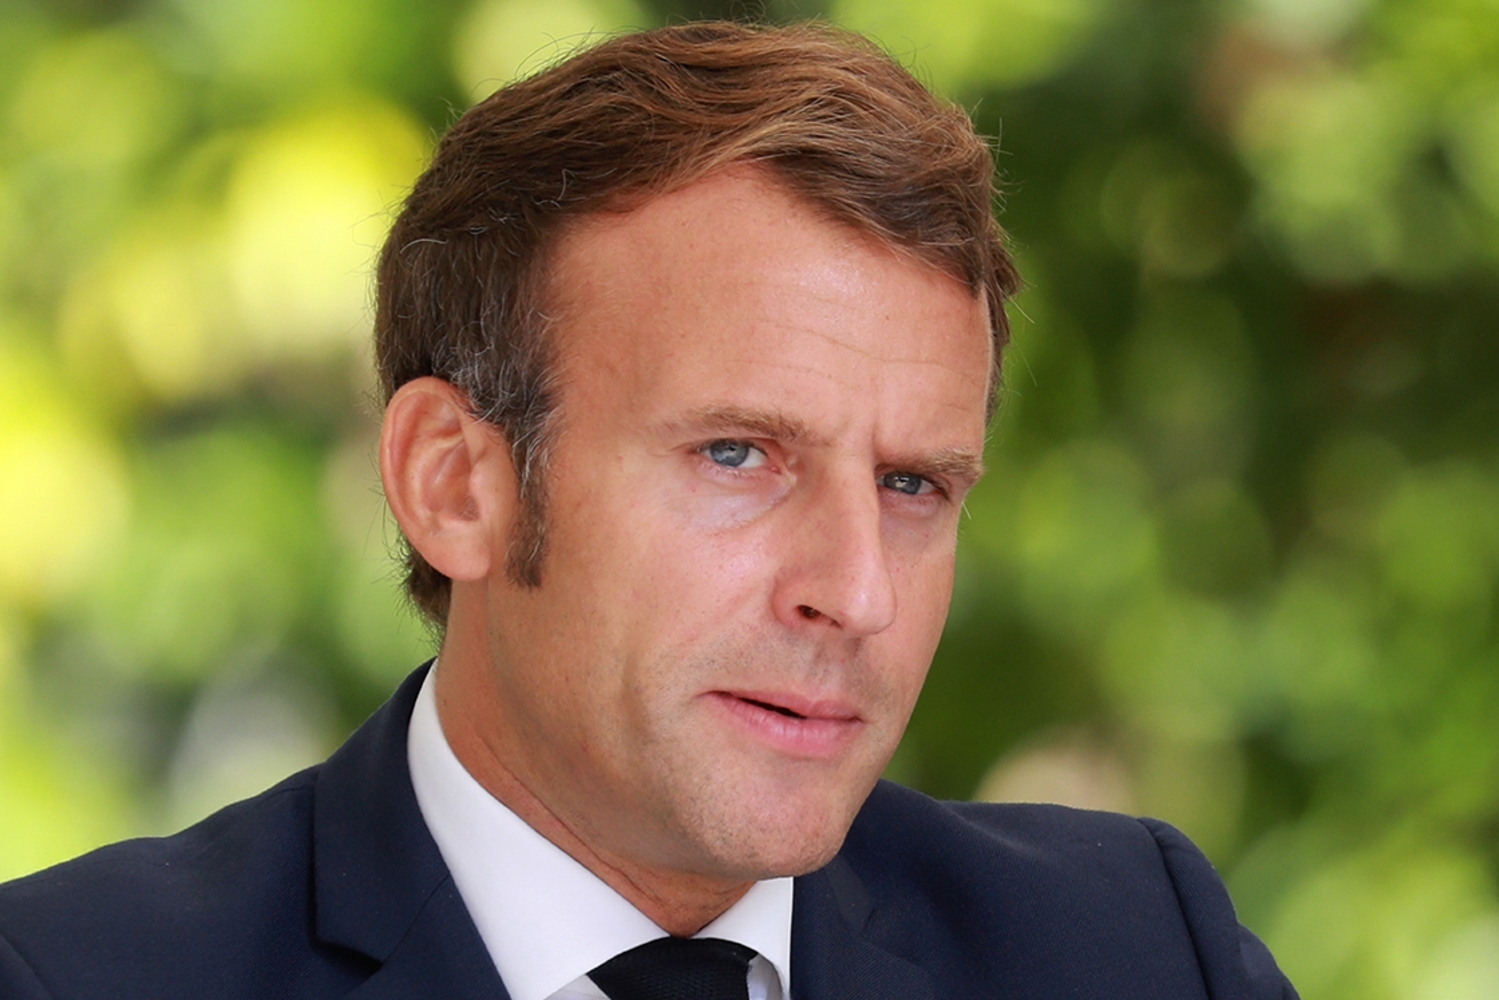 French president Emmanuel Macron tried to organise a mini-summit on the Libyan crisis on 17 September in Paris.